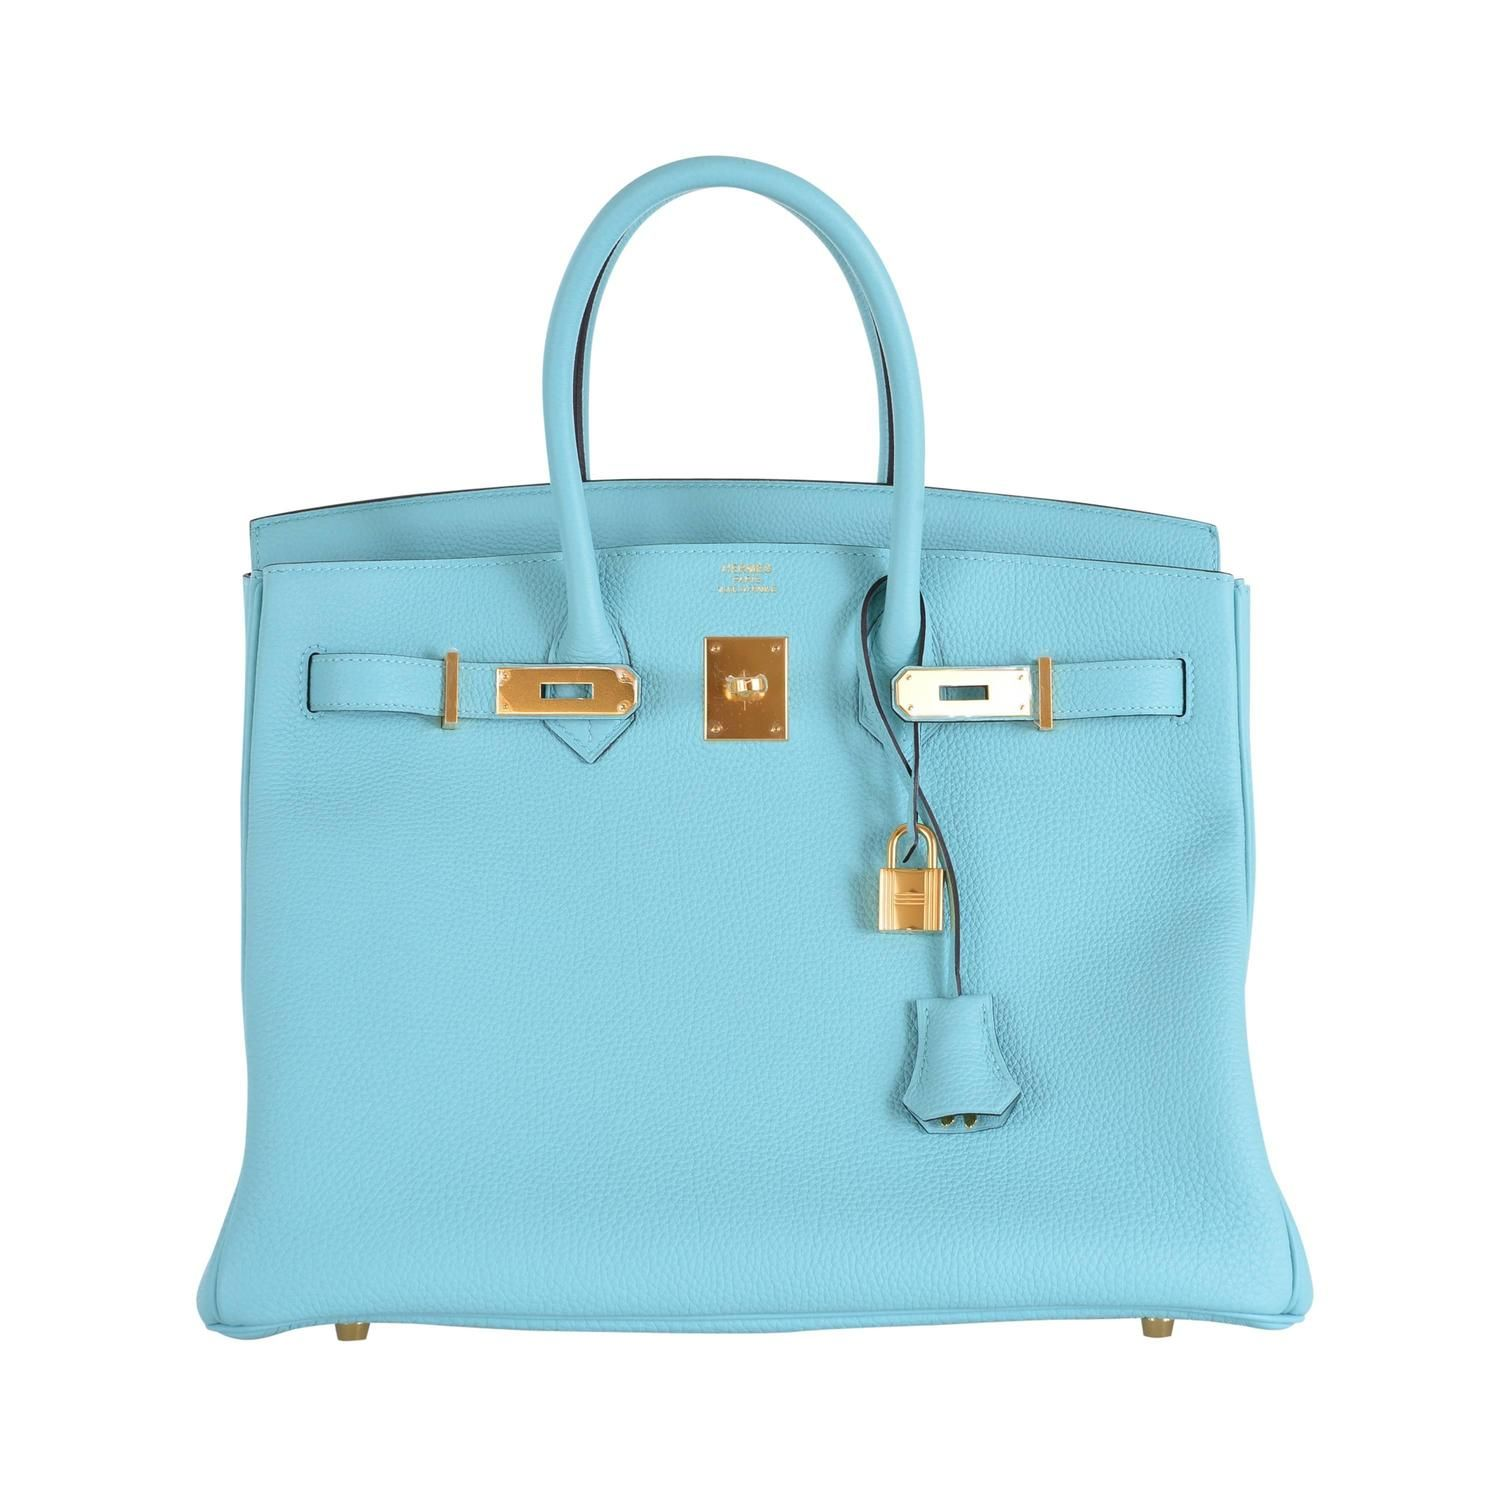 lt 3 HERMES BIRKIN BAG BLEU ATOLL TOGO TIFFANY BLUE GOLD HARDWARE  JaneFinds   From b5d5fc3374